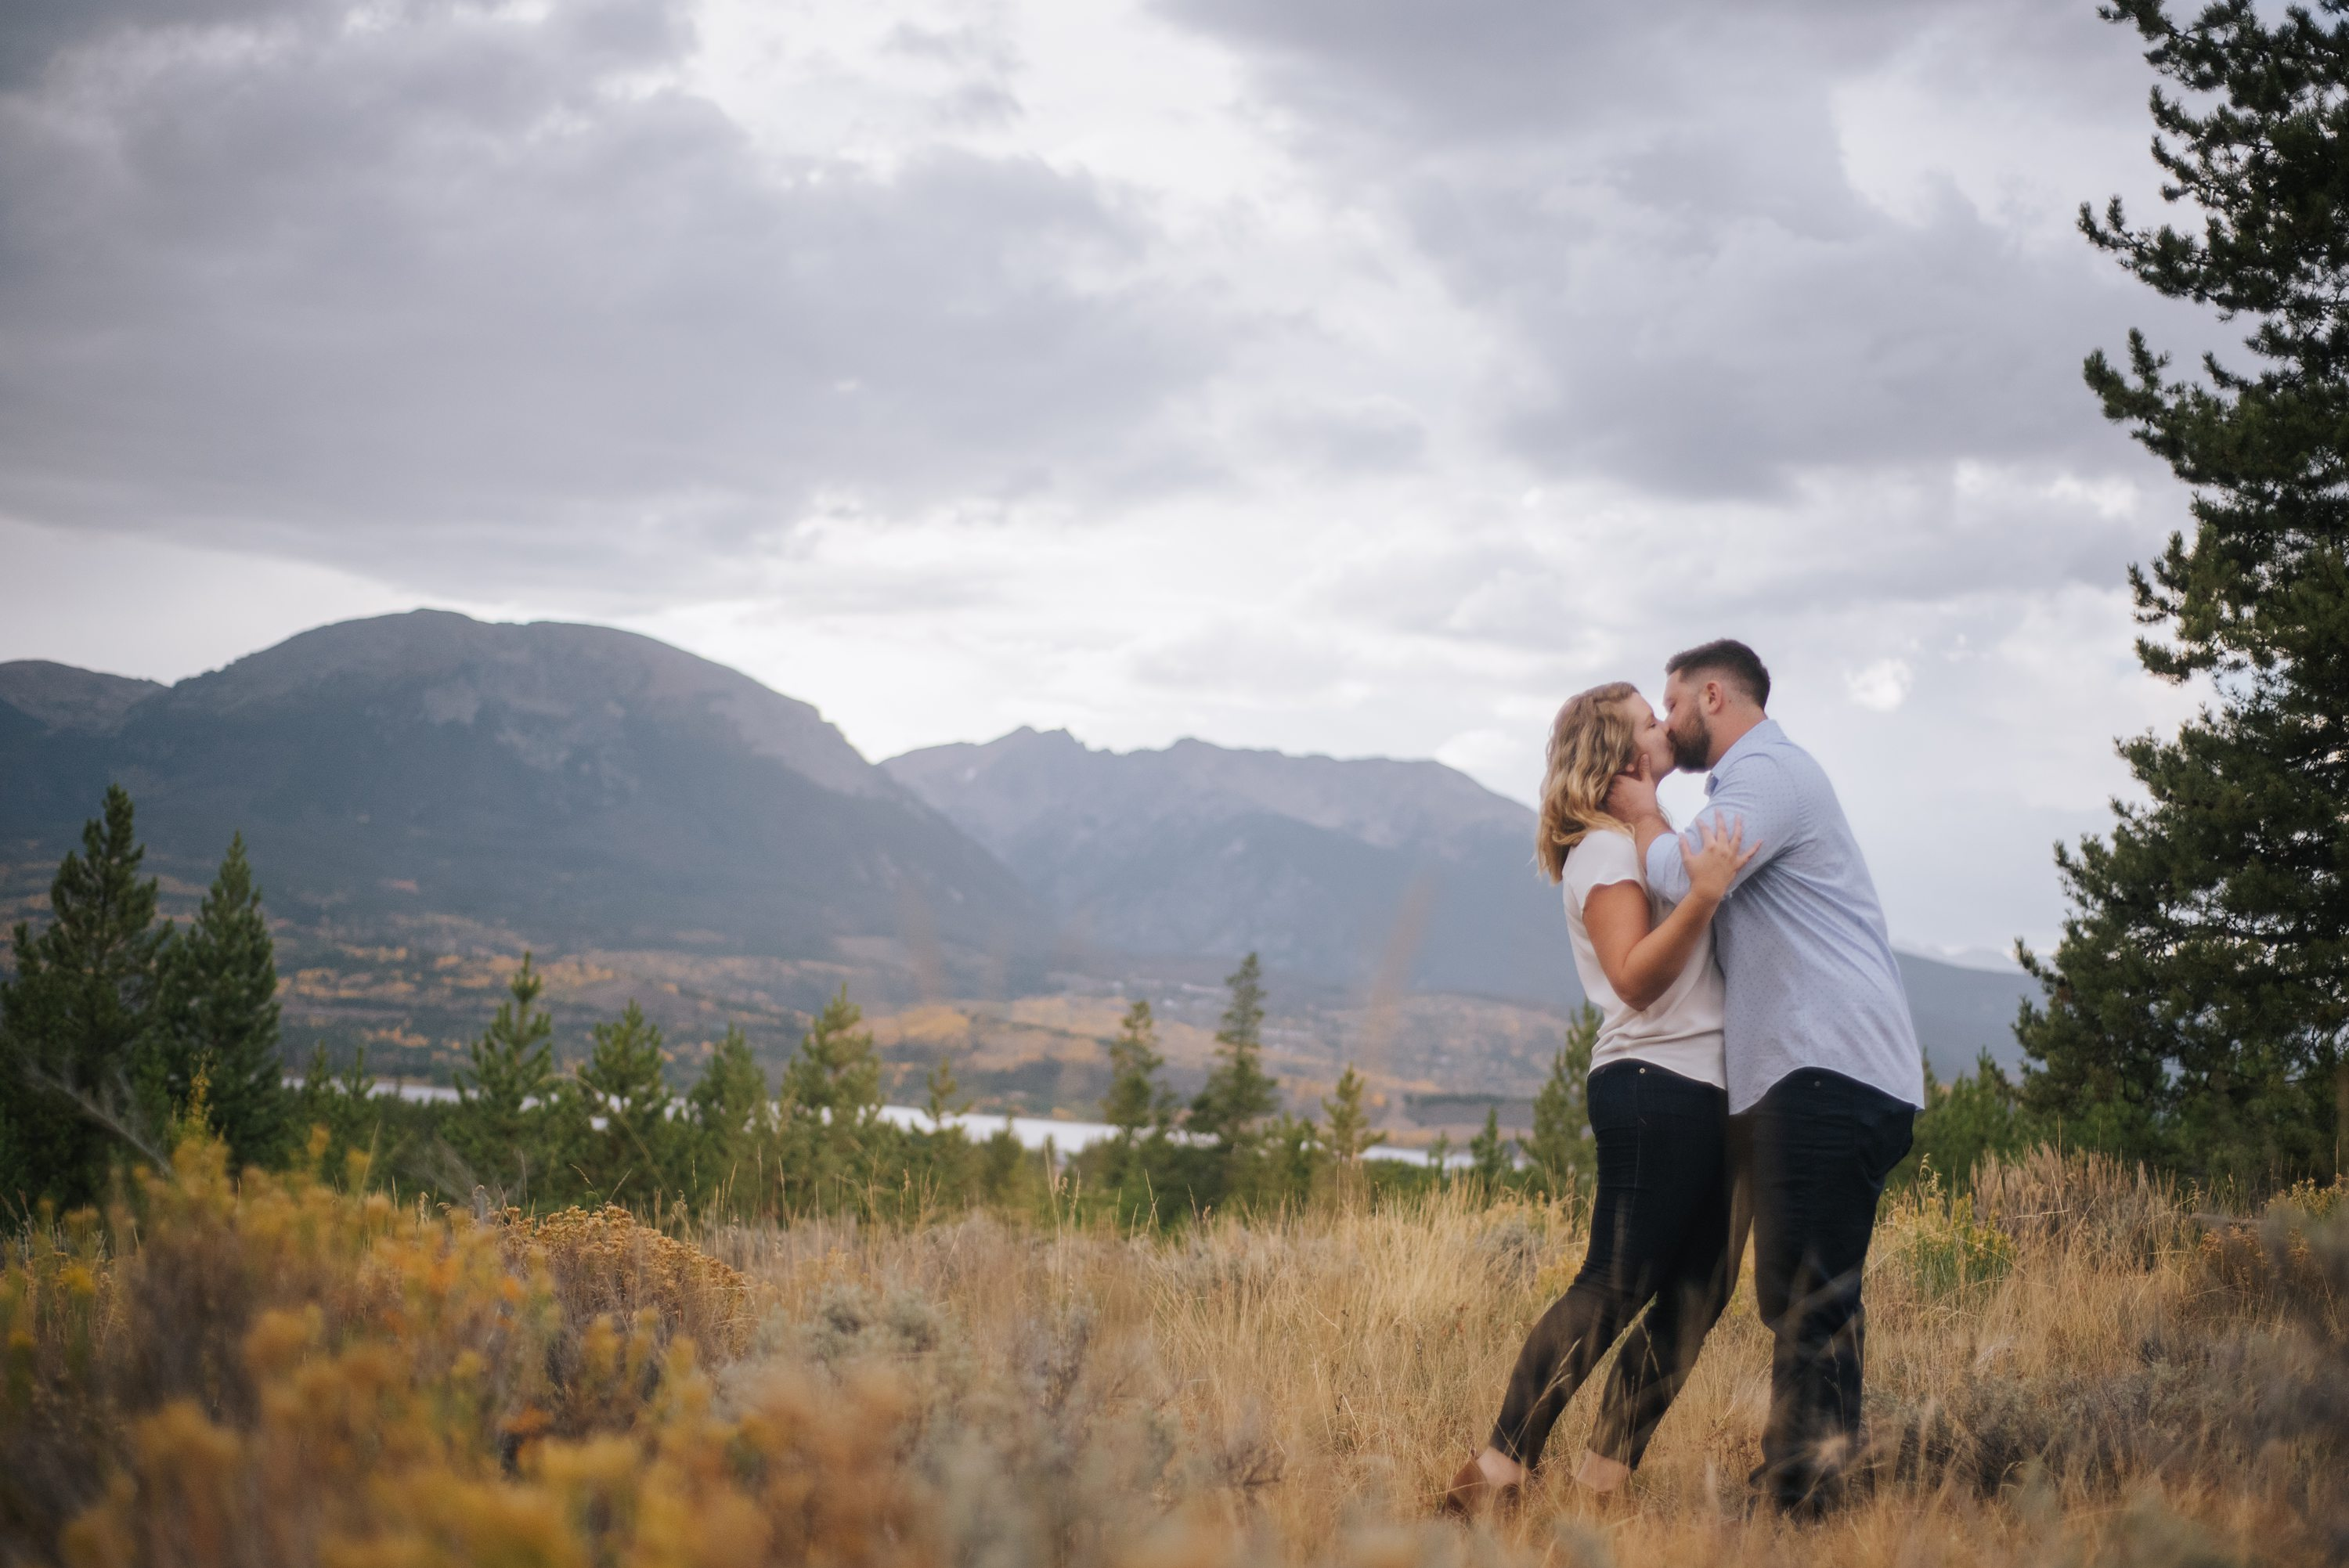 fall engagement photography, colorado engagement photography